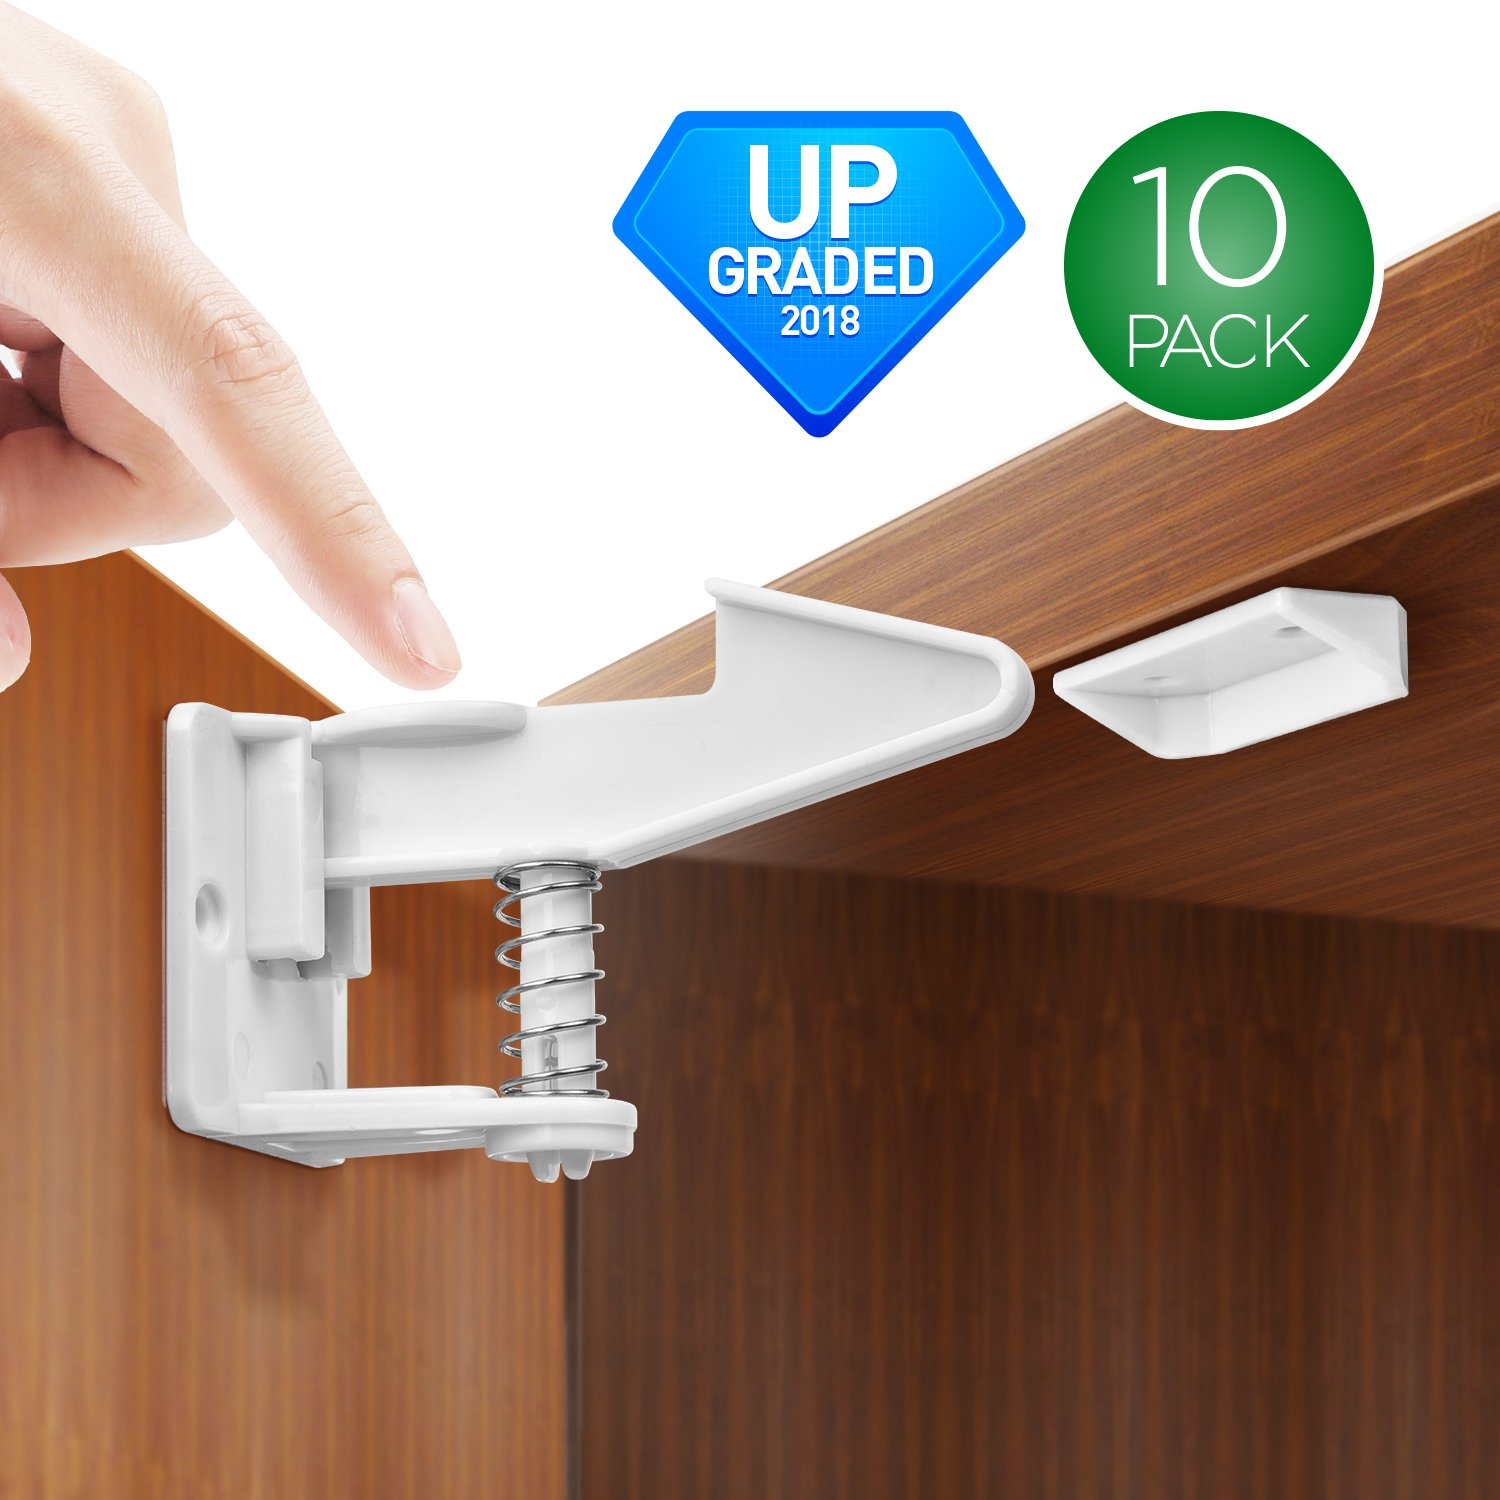 Cabinet Locks Baby Proofing Child Safety Locks 10 Packs, No Tools Or Drilling Needed Safety Drawer Locks for Drawers, Cabinets, Closets